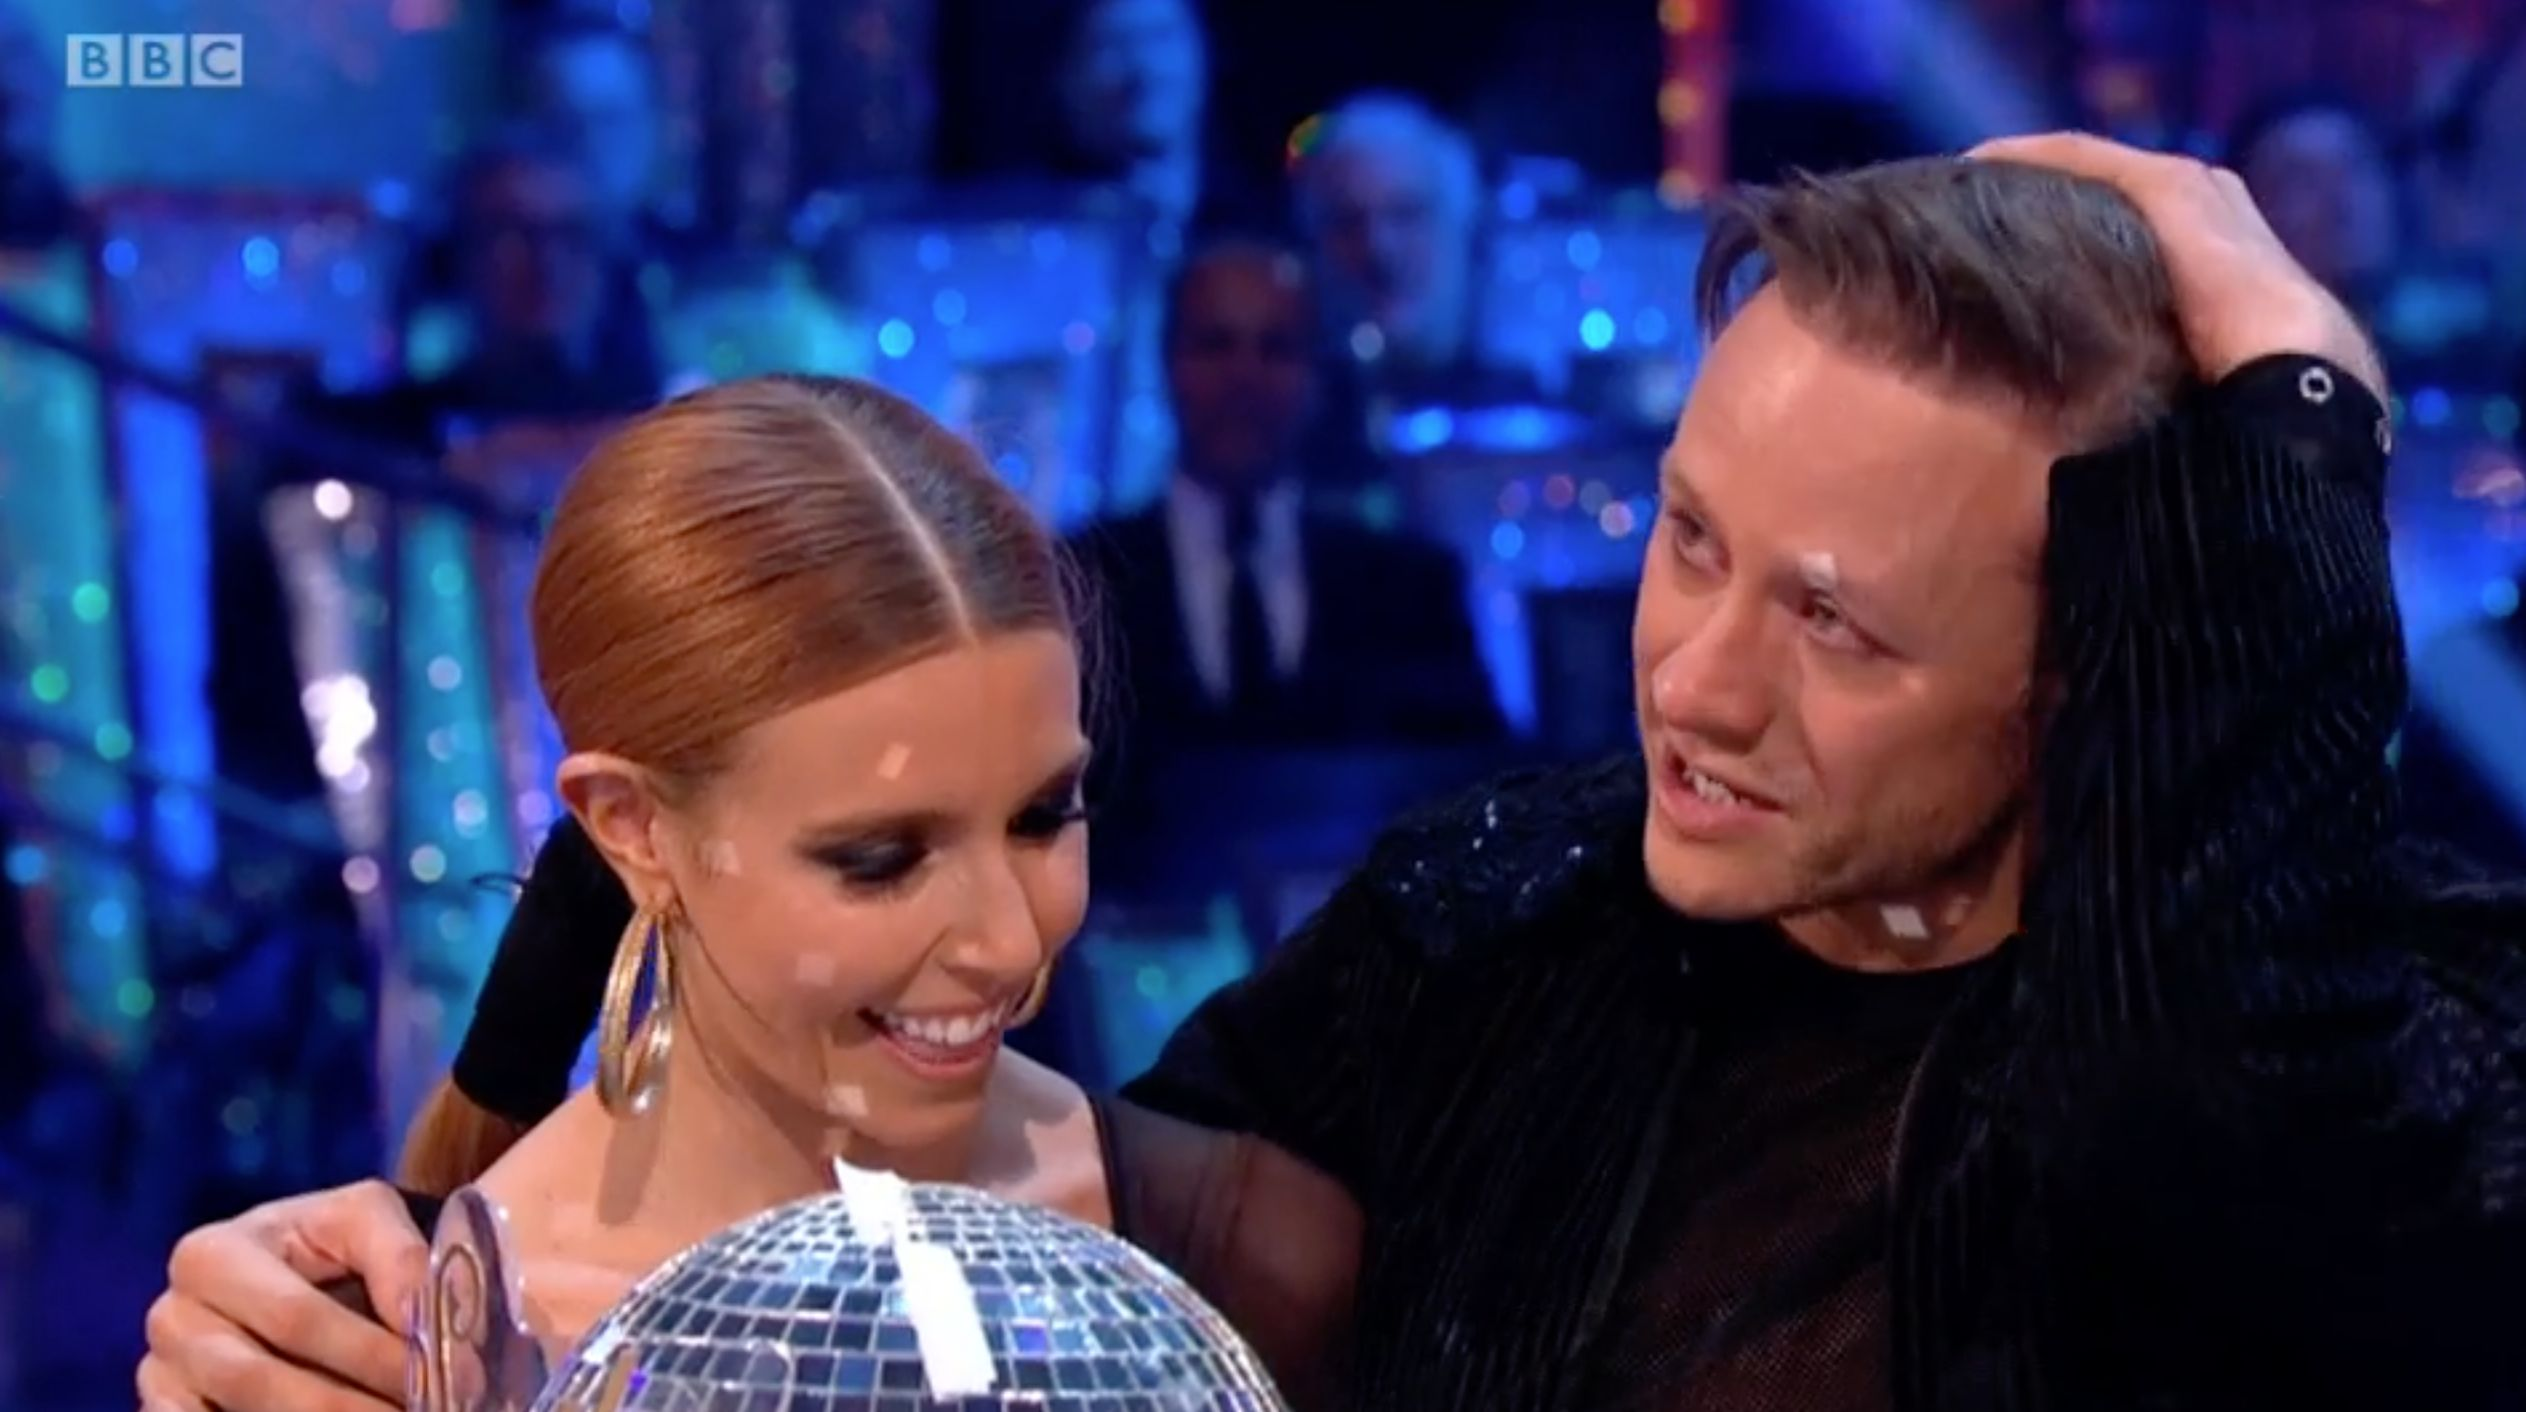 The Public Has Spoken, And Stacey Dooley Is This Year's 'Strictly'